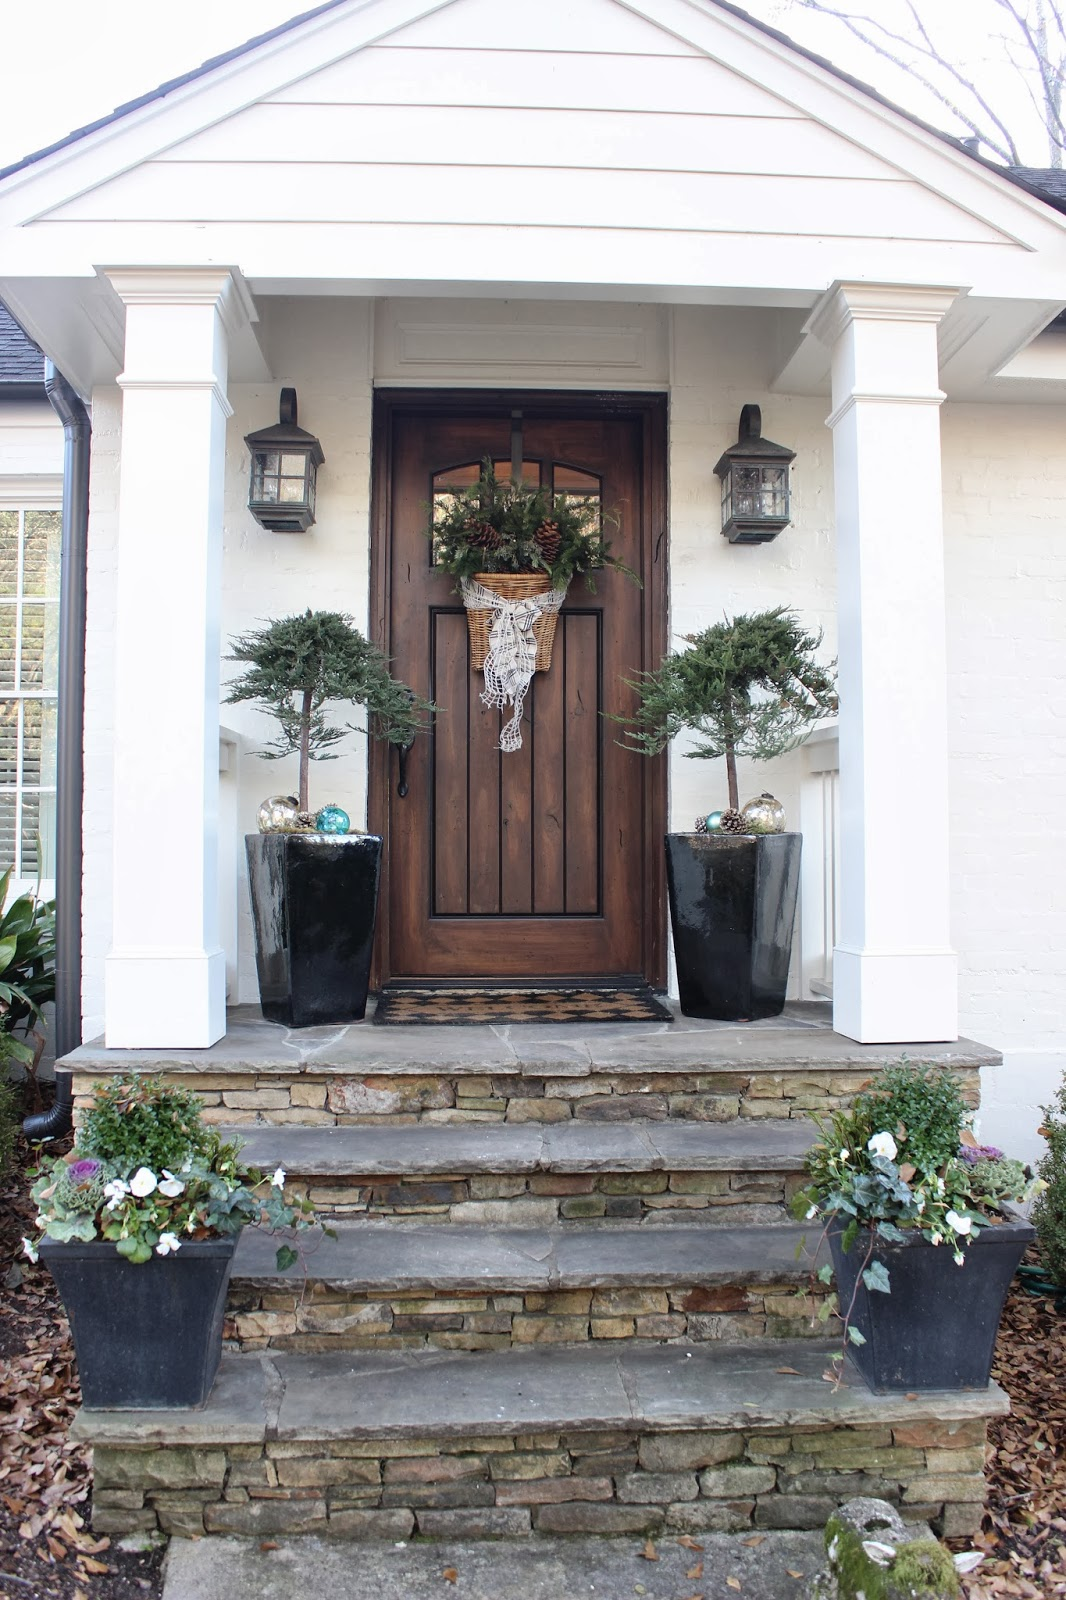 Porch columns coaches and front porches on pinterest for Exterior door designs for home